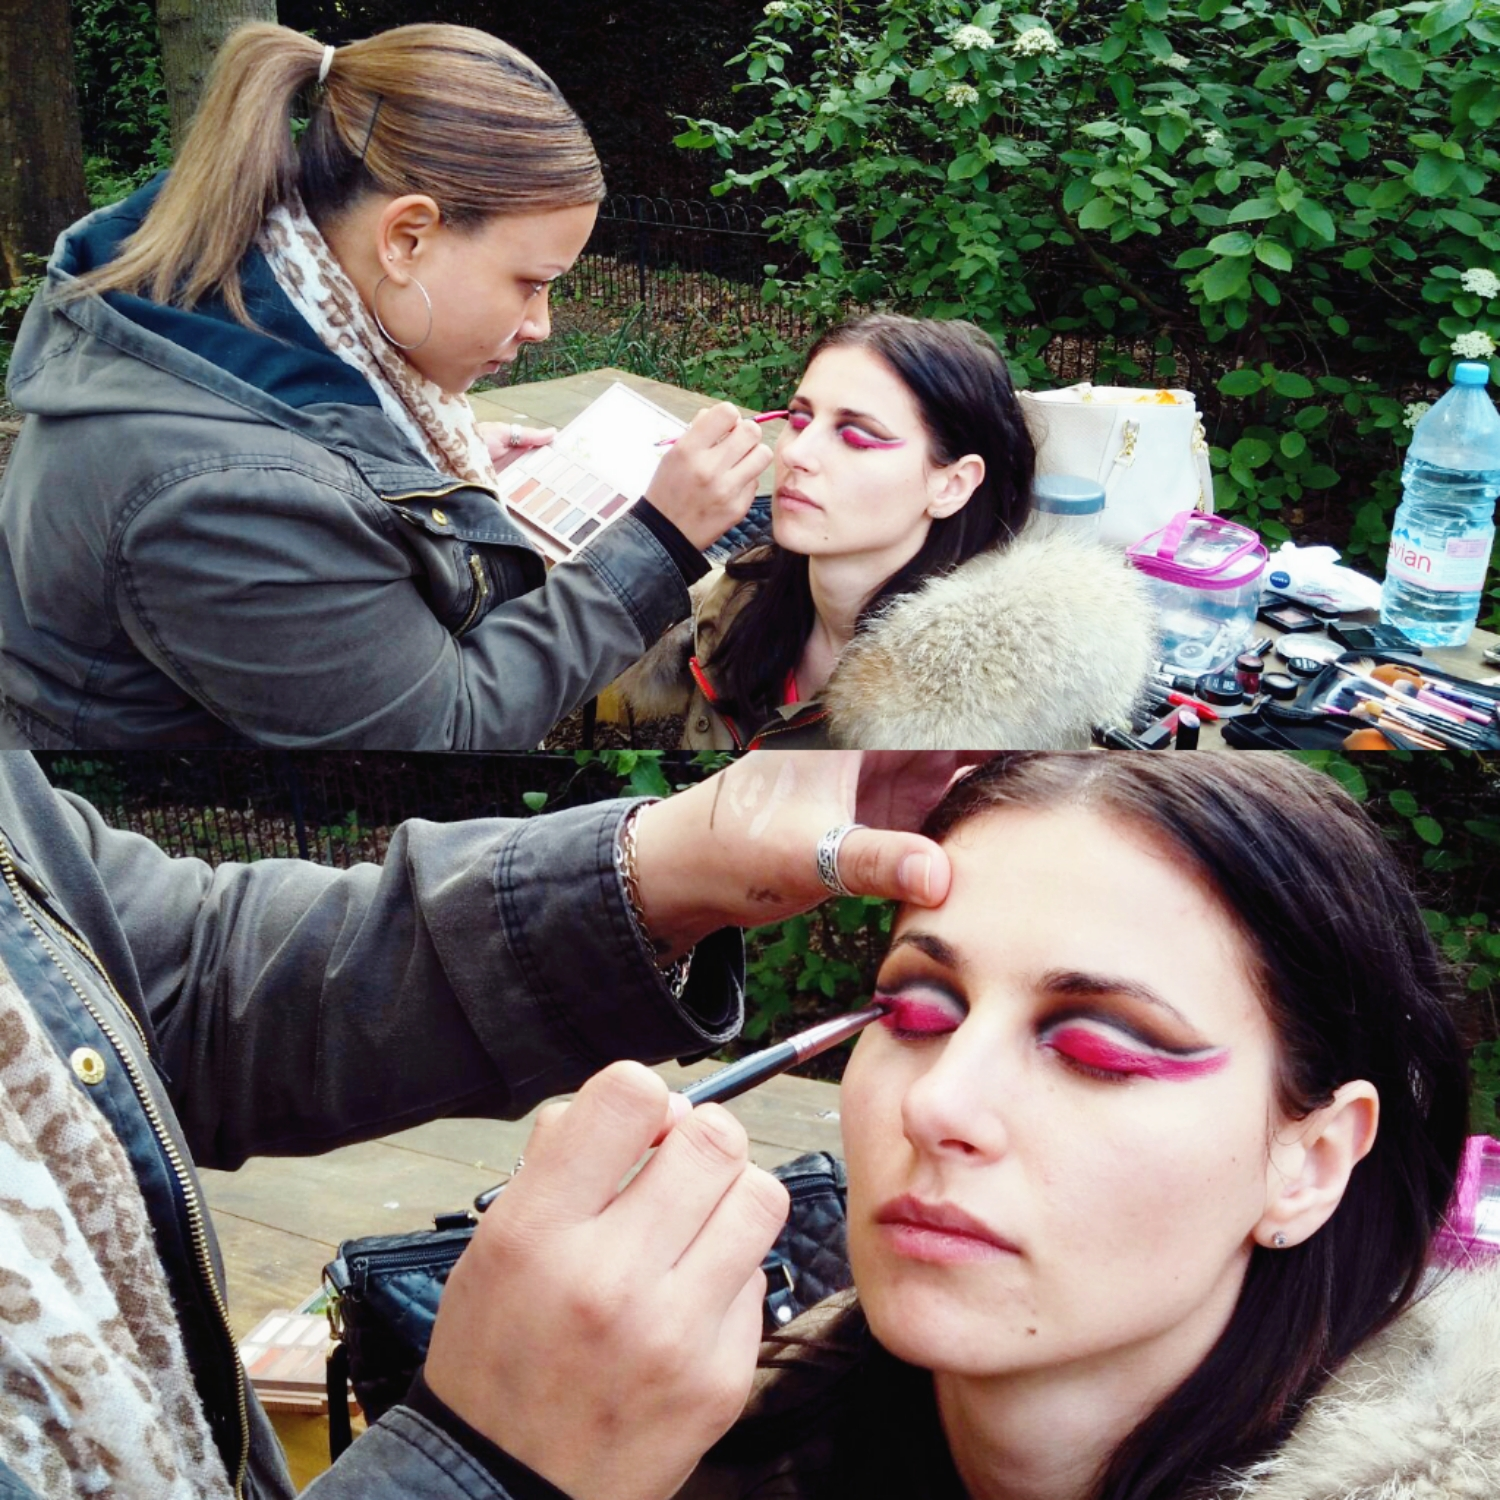 Behind the Scene Red Riding Hood